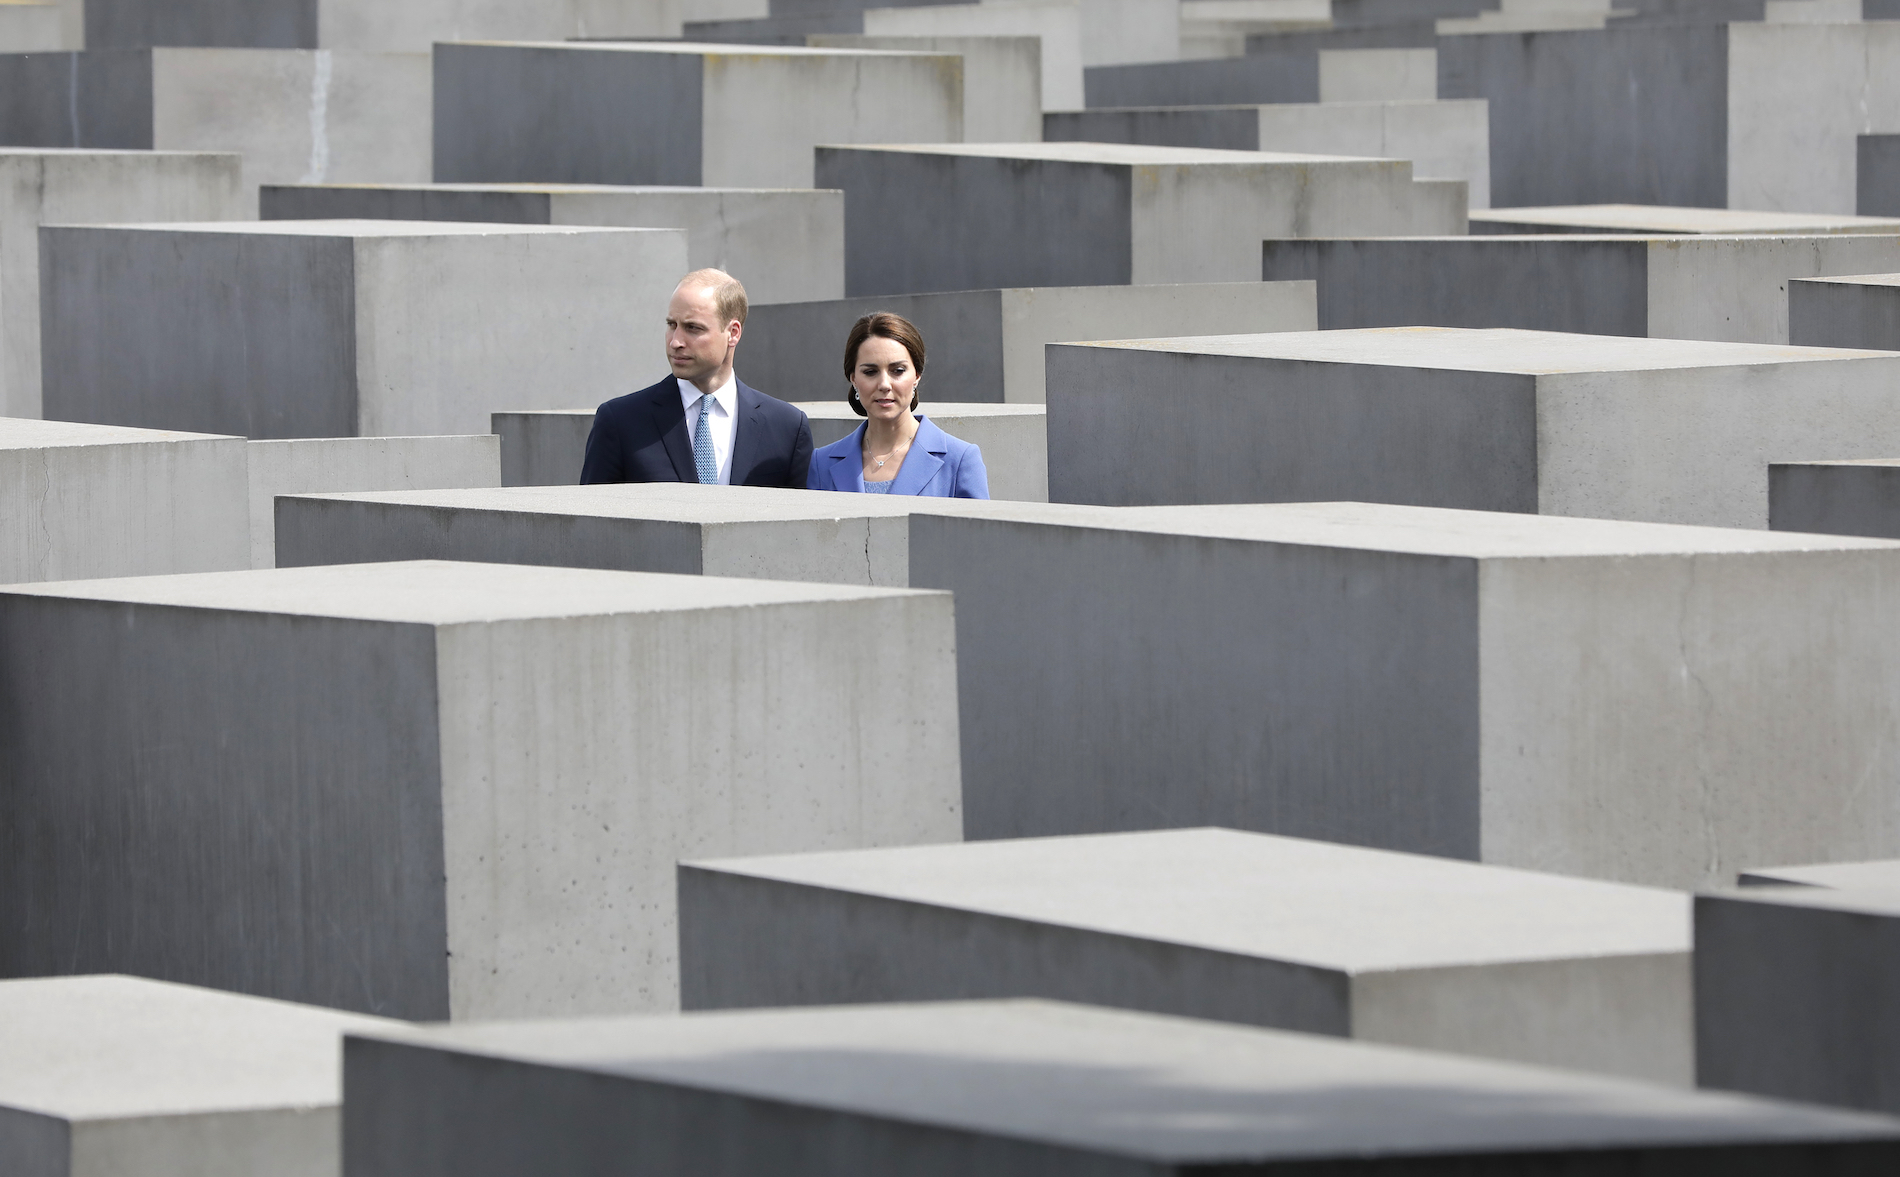 Prince William and Duchess Kate visit the Holocaust Memorial in Berlin on July 19, 2017.